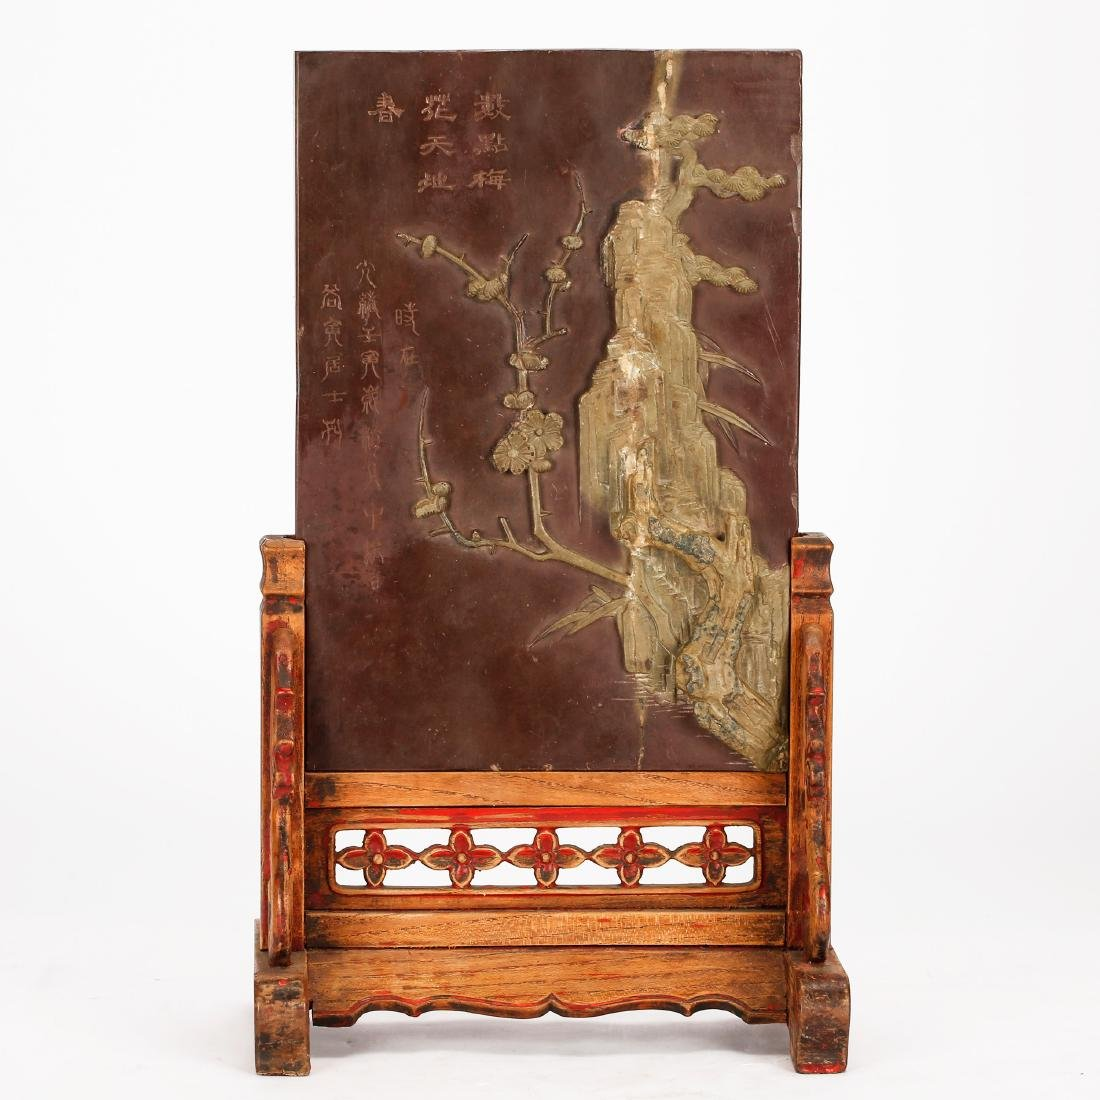 CHINESE SCHOLAR STONE PANEL TABLE SCREEN QING DYNASTY